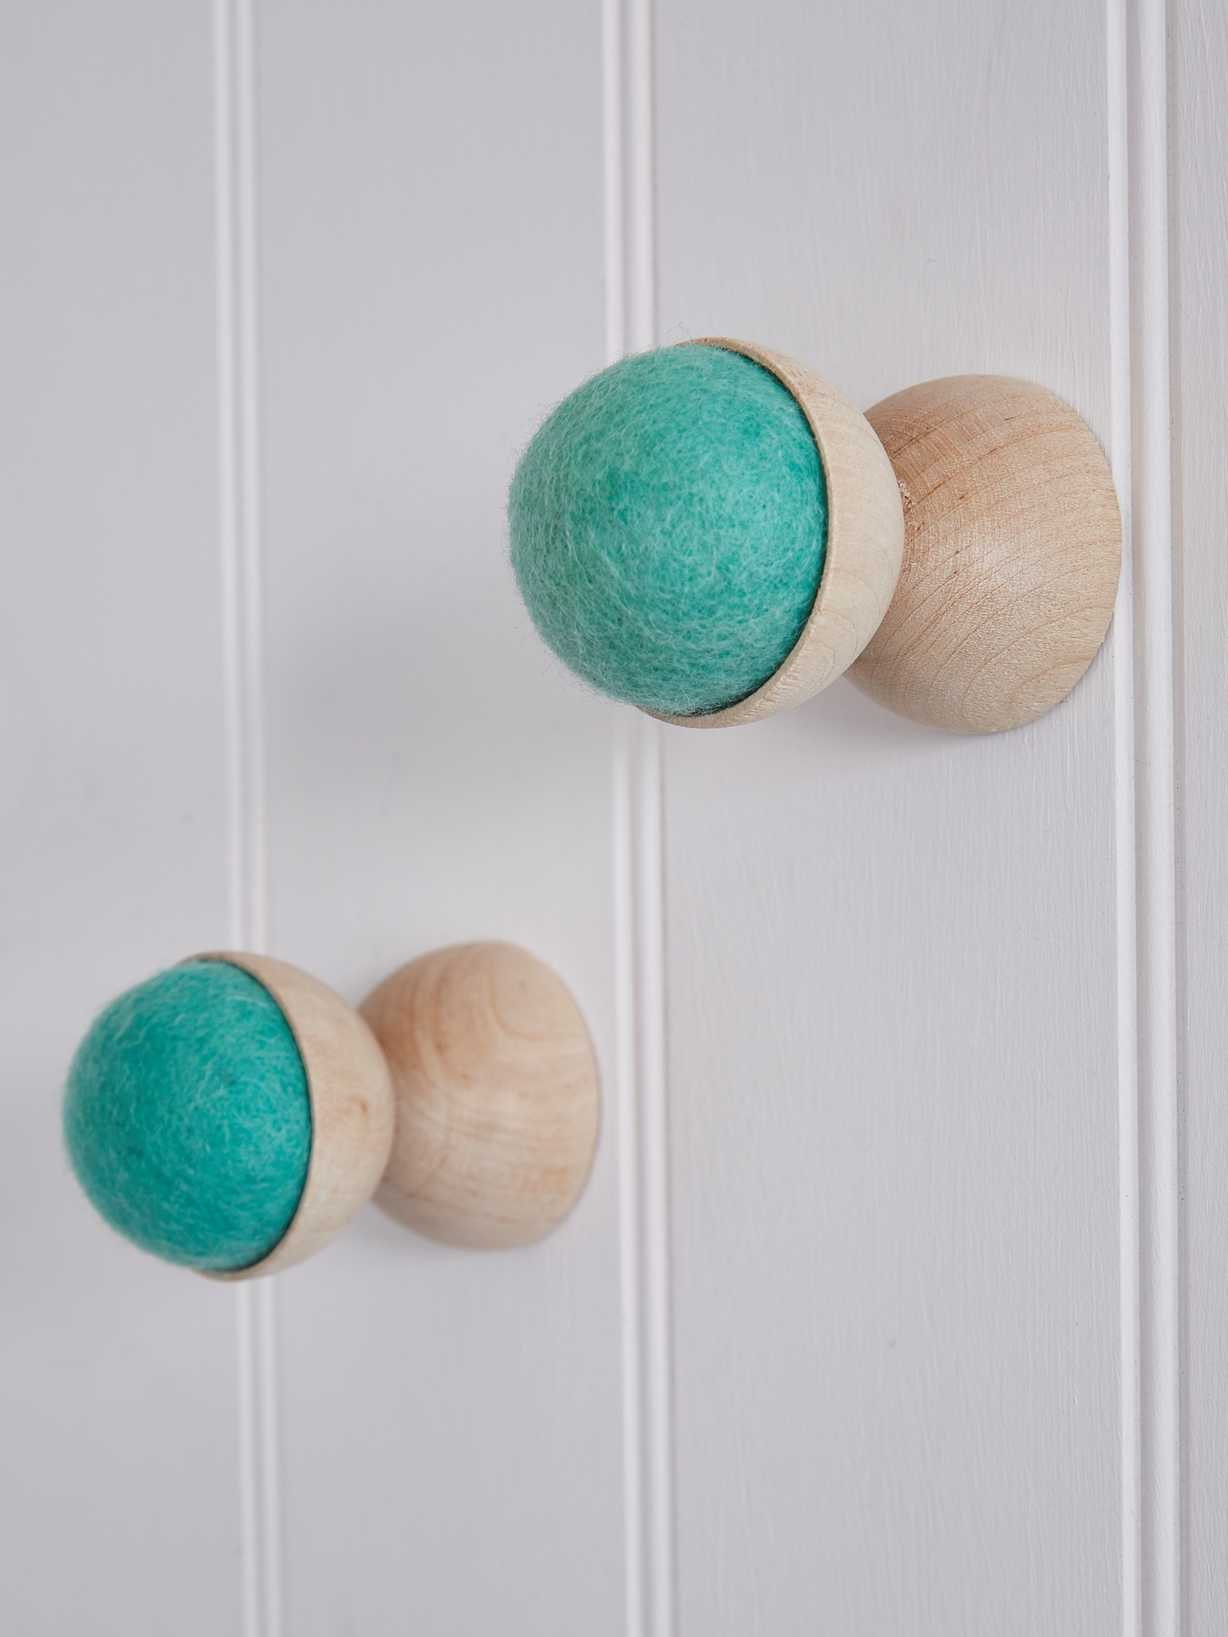 Nordic House Hand-Crafted Wall Hanger - Pistachio